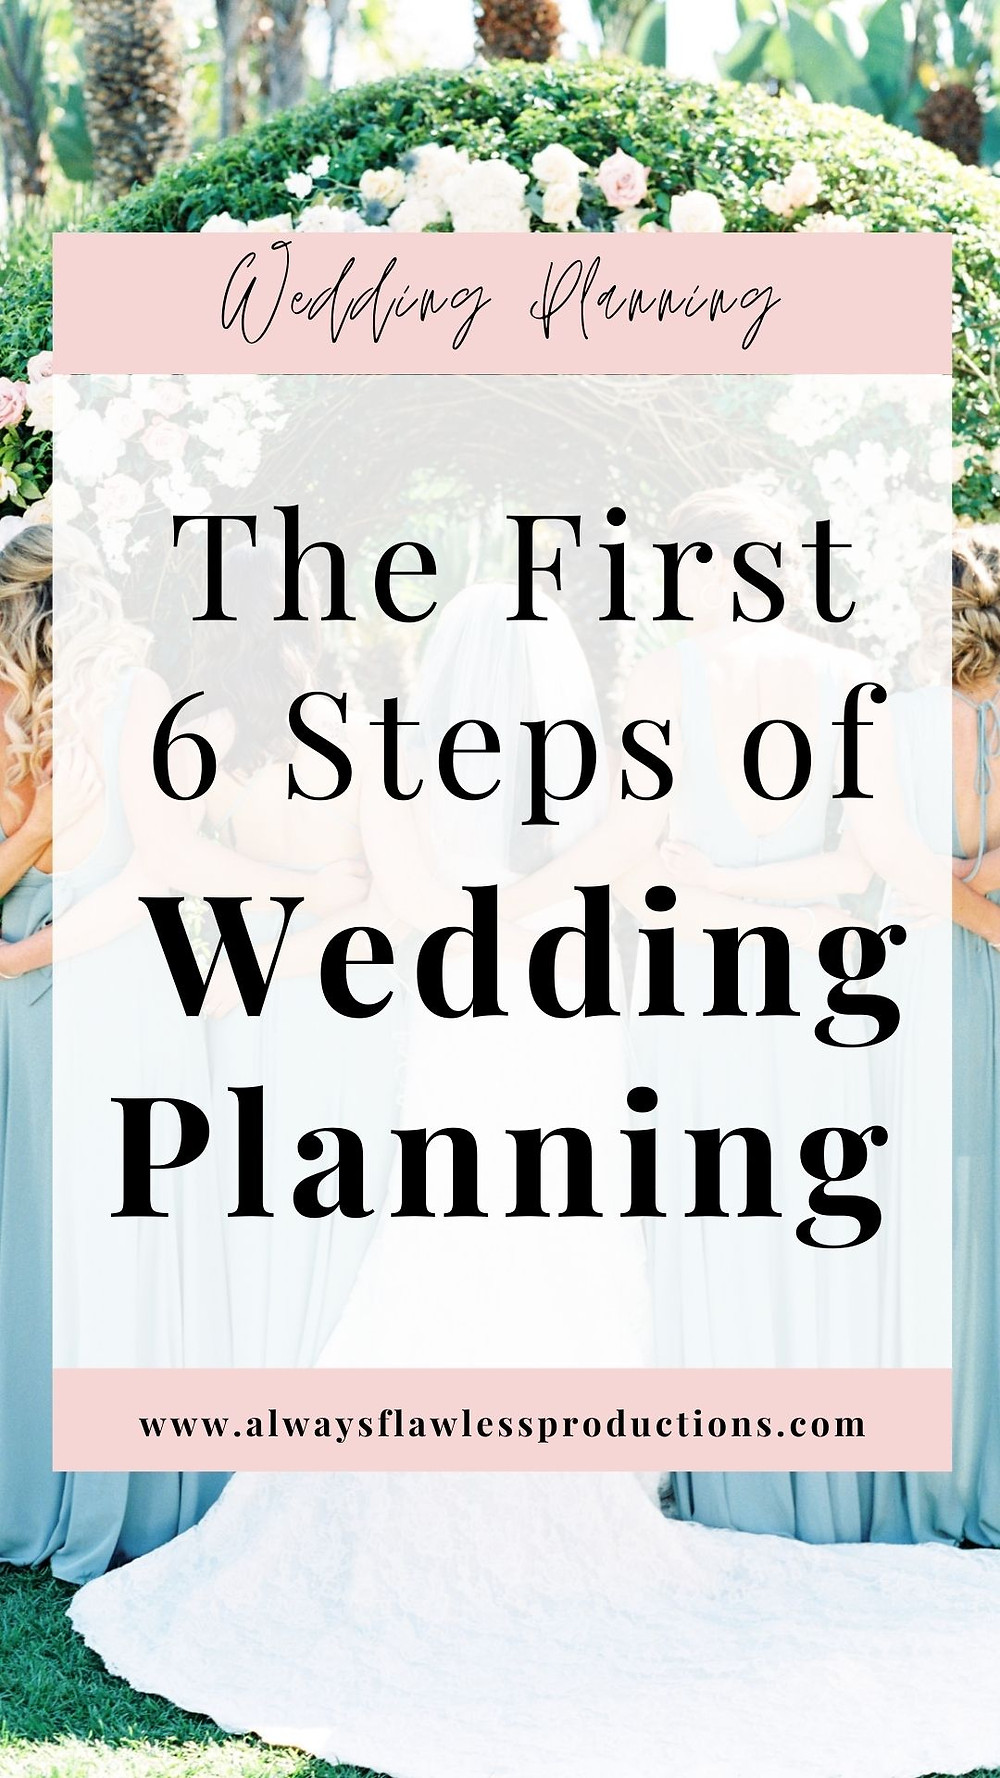 The First Steps Of Wedding Planning